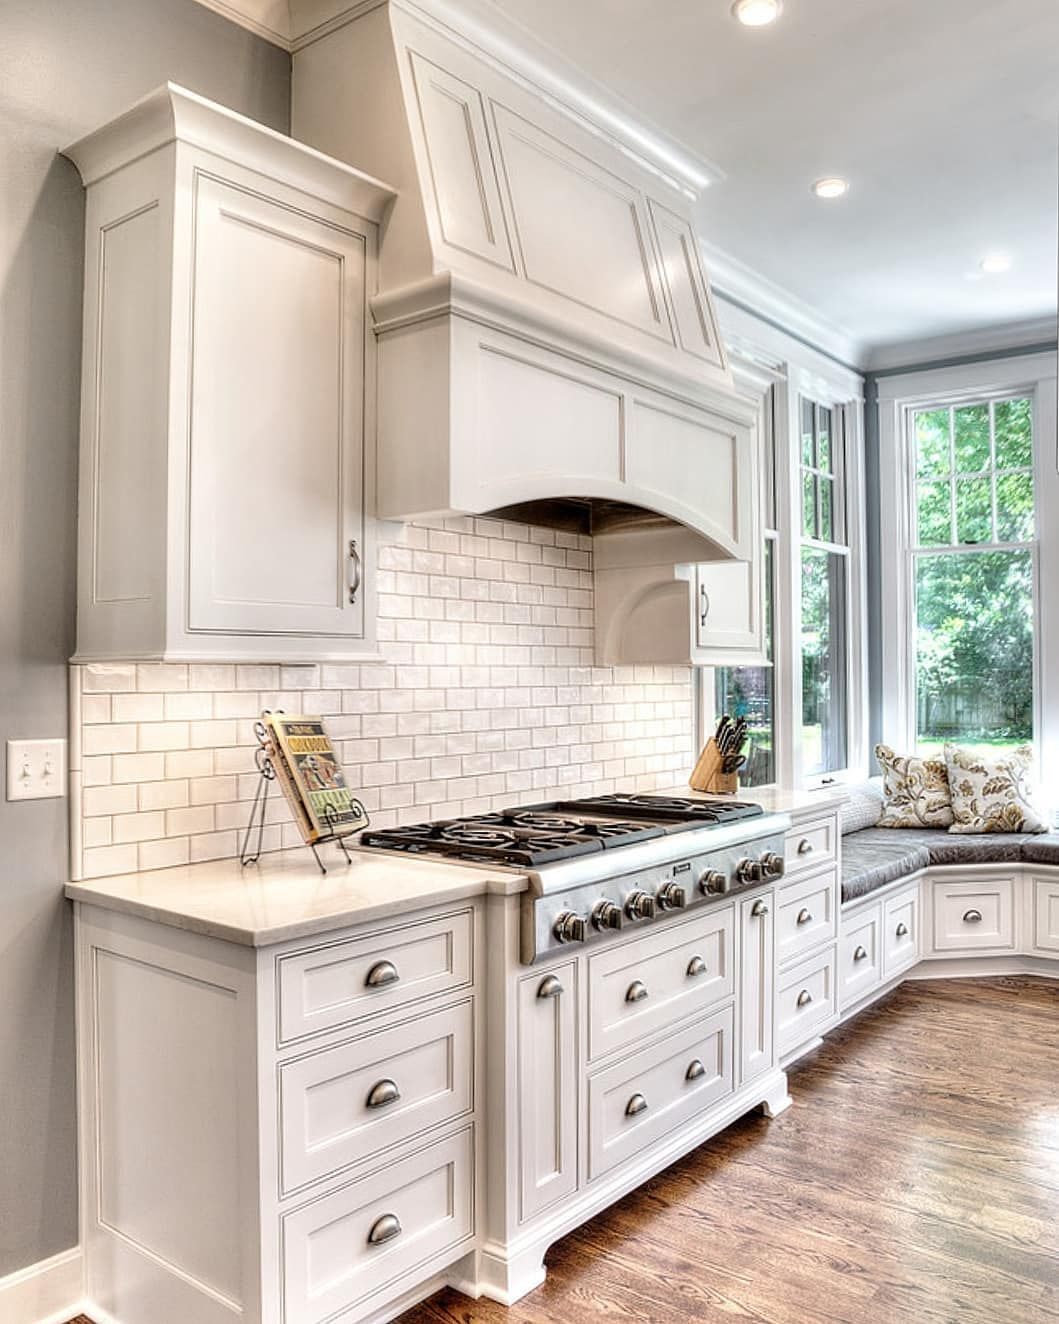 Best Swipe To See More Of This Beautiful Kitchen By L Marie 400 x 300